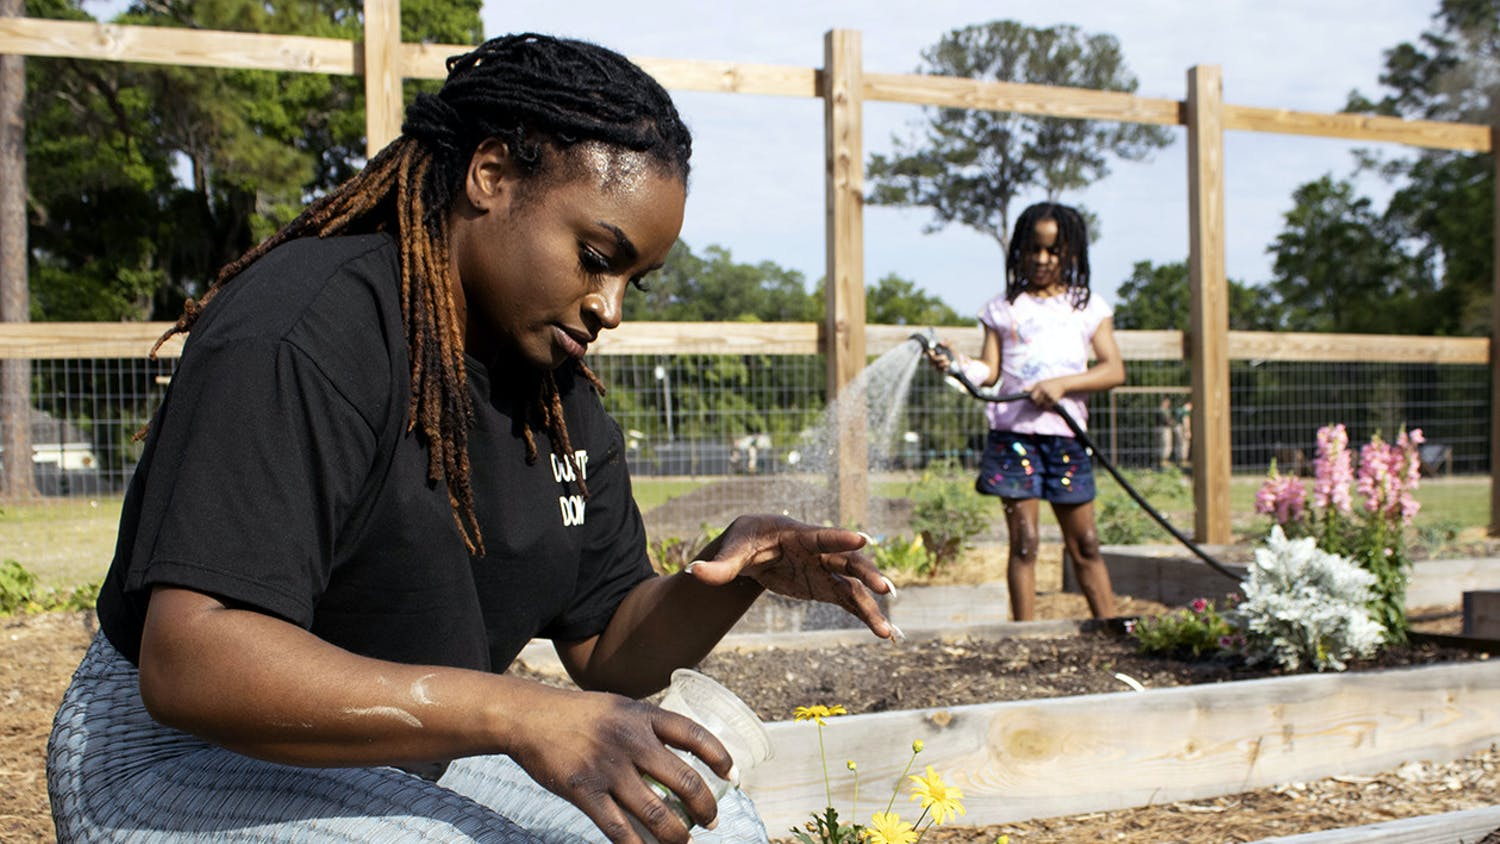 Kimberly Brown, 30 (left), sprinkles fertilizer around newly planted daises as her 7-year-old daughter, Bella Smith (right), waters a garden plot behind her on Monday, March 29, 2021. They spent the day at Reserve Park for the second Gainesville Black Garden Network meeting since the group formed in February.